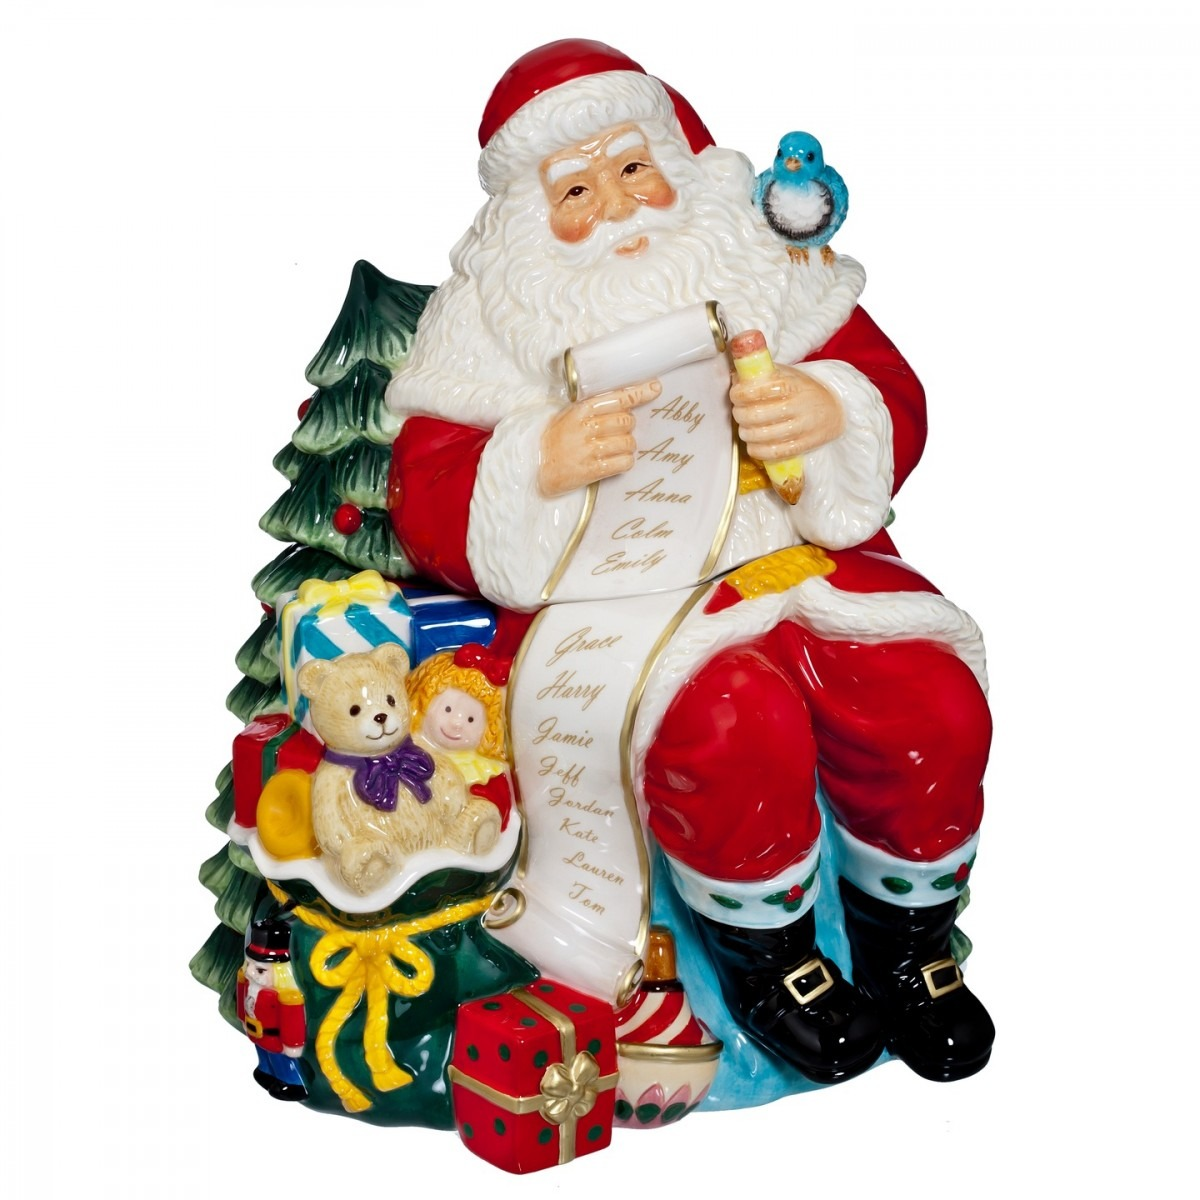 2015 Holiday Heirlooms Ceramic Cookie Jar Santa With List